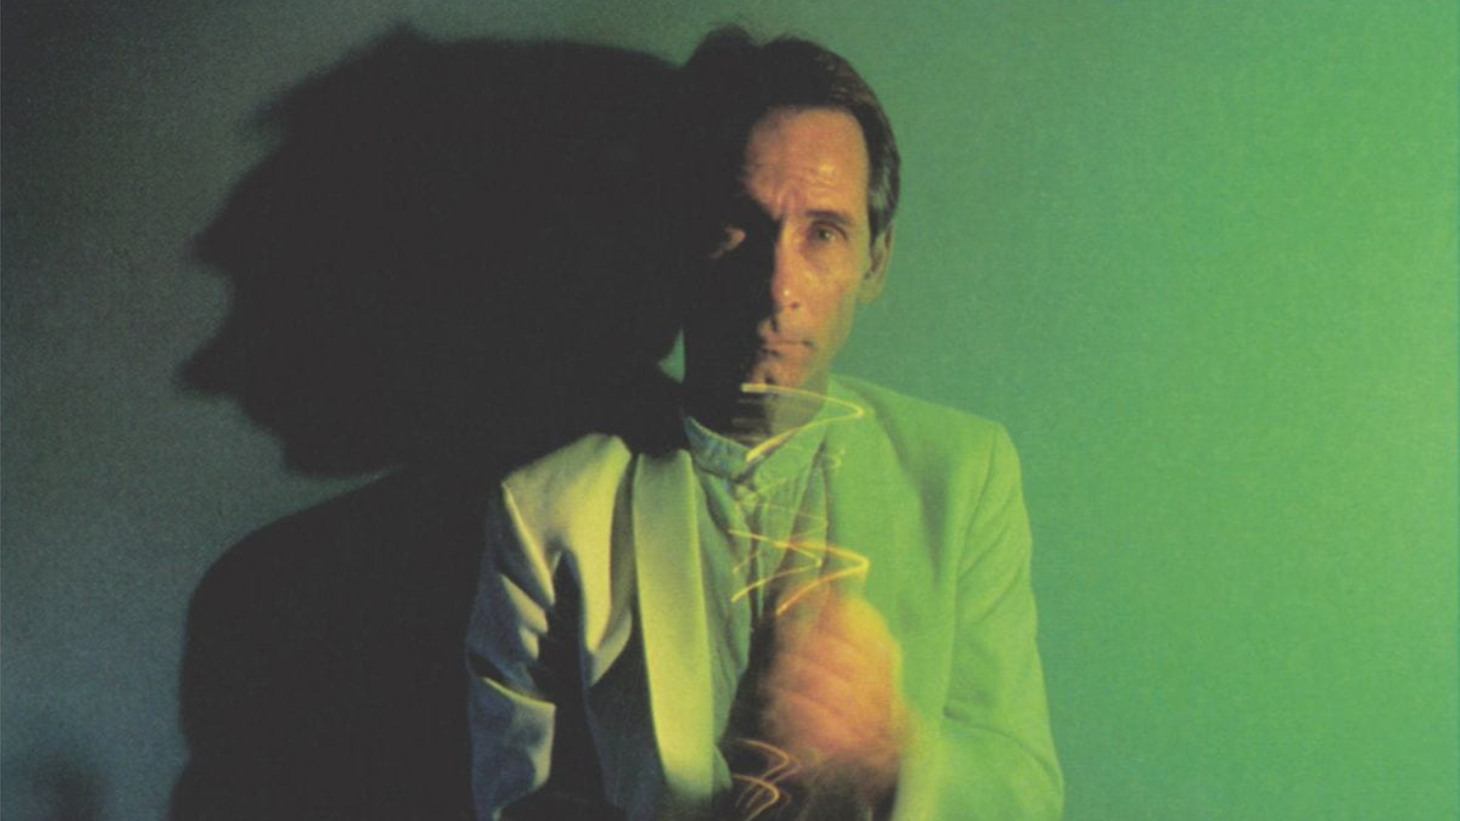 The late avant garde composer Jon Hassell in 1981.